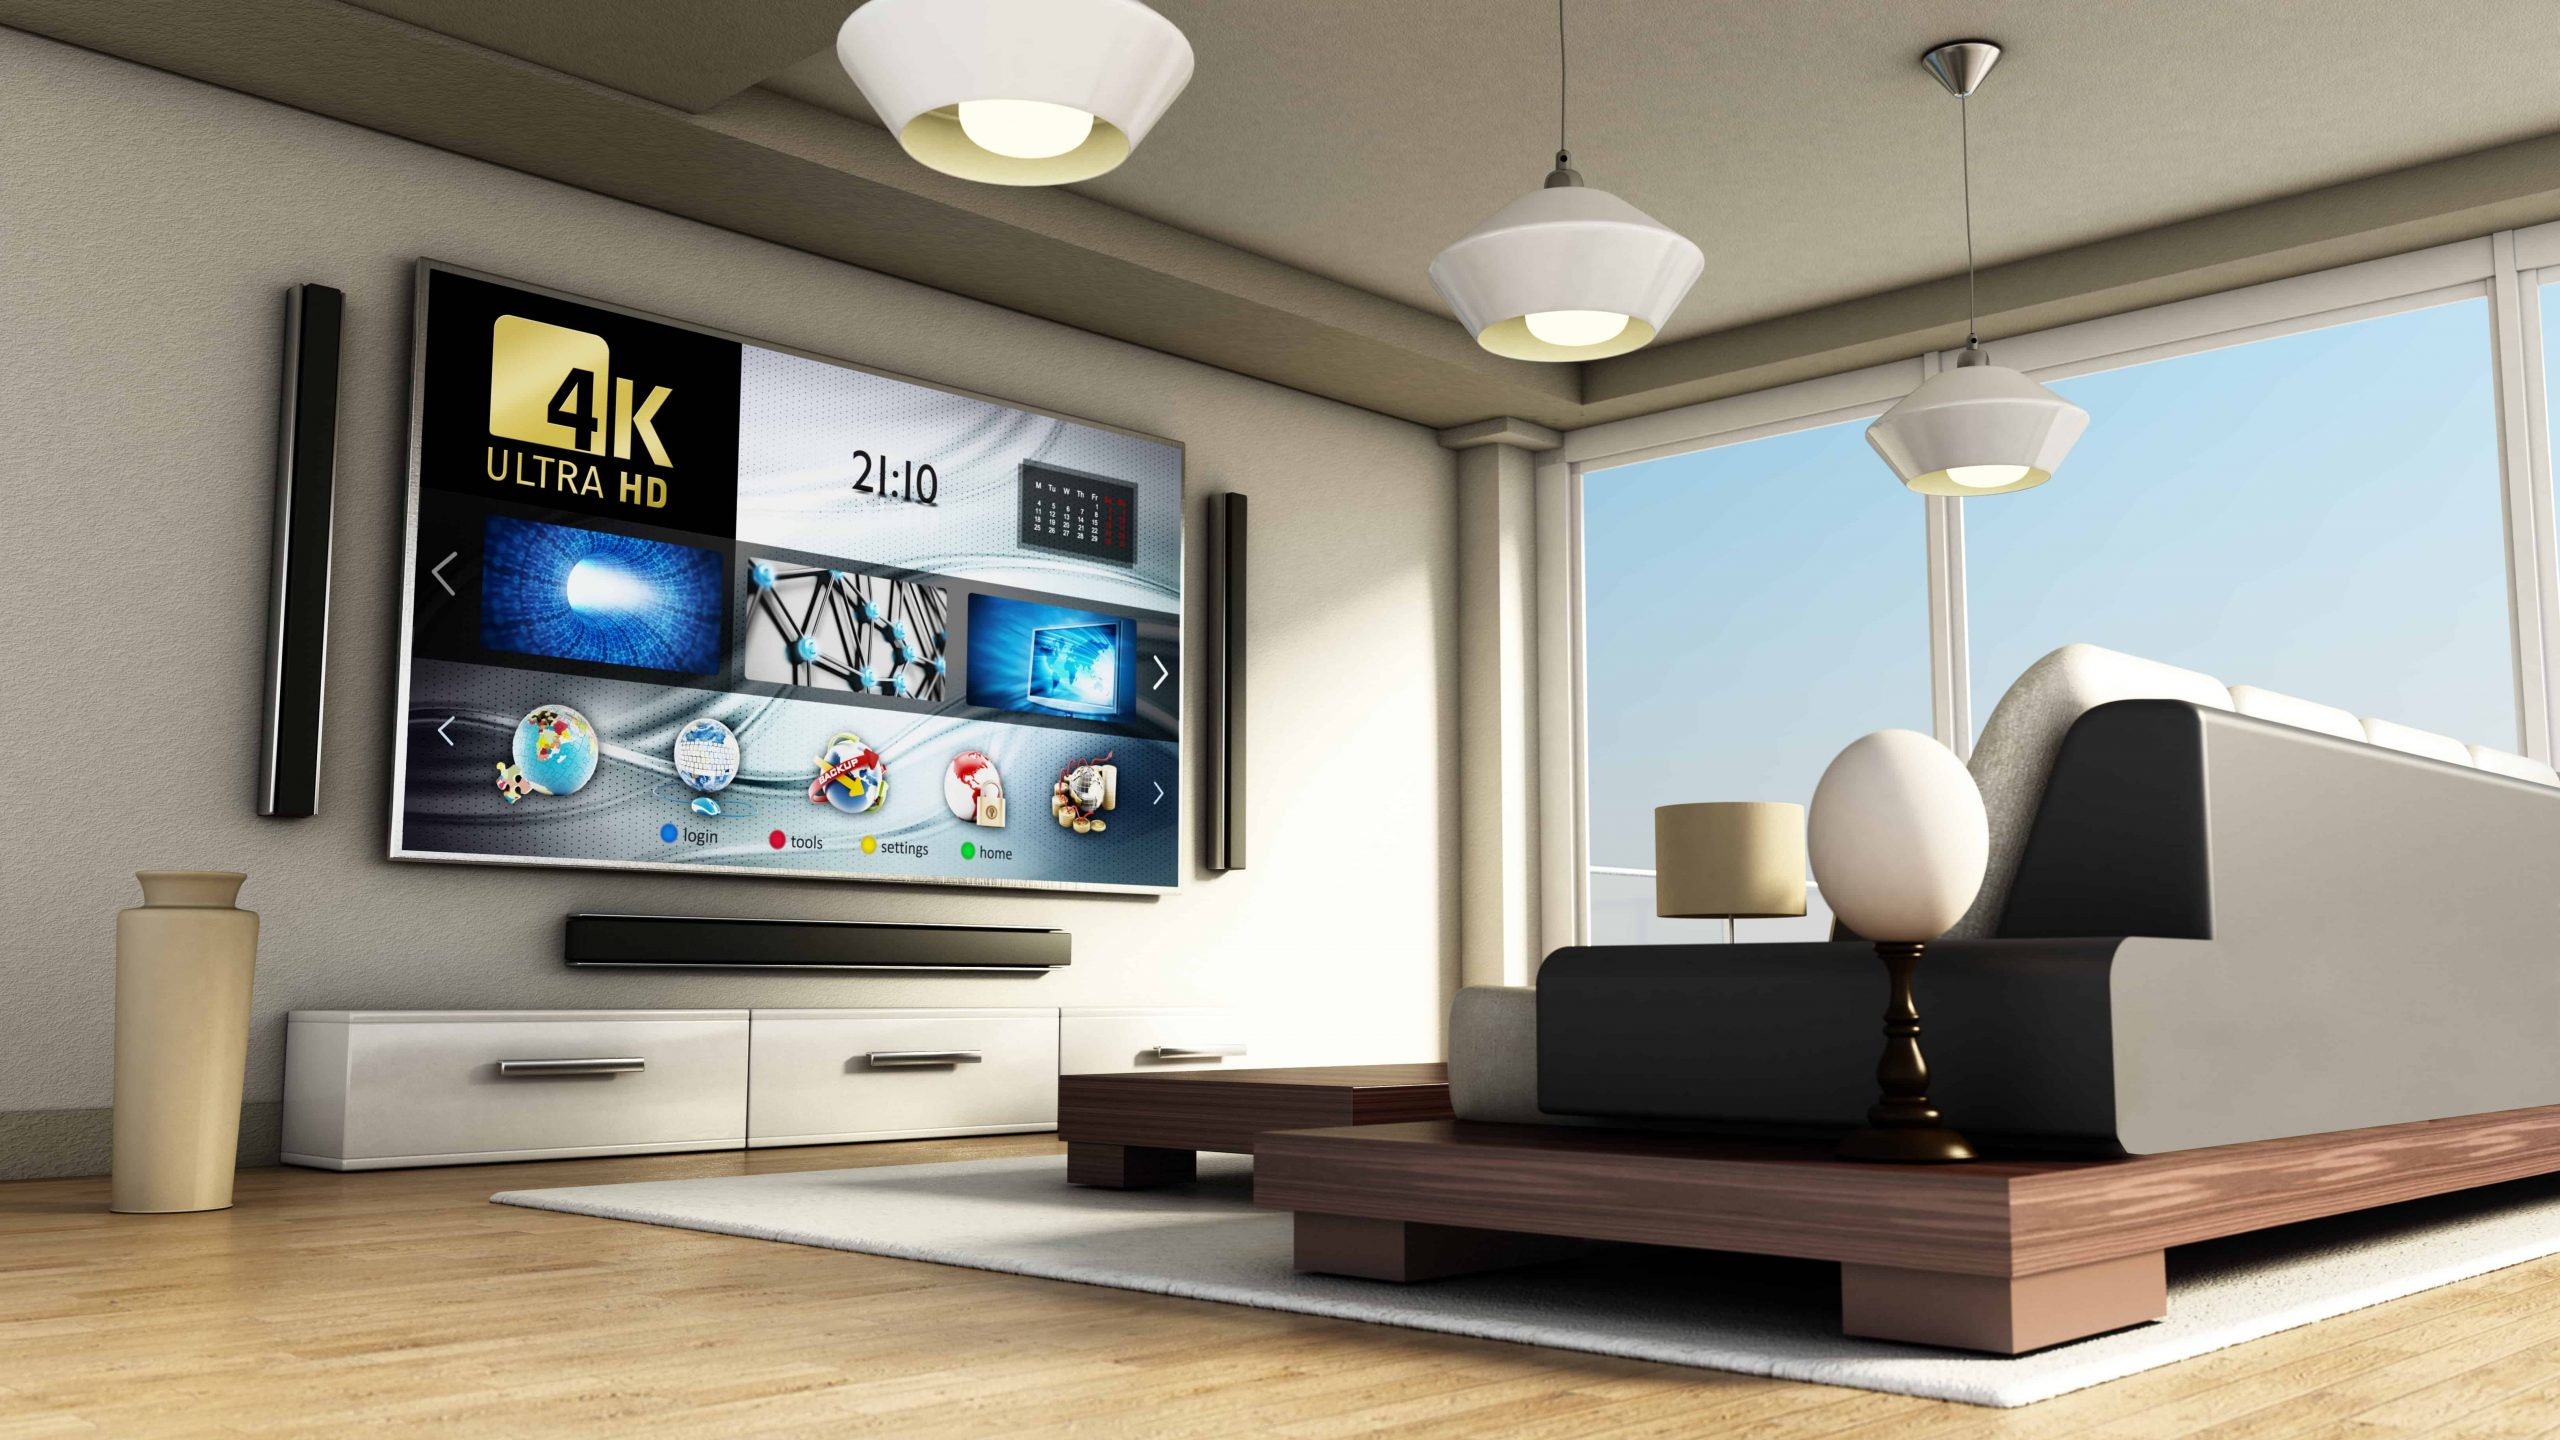 Best Samsung Smart TV 2020: Shopping Guide & Review